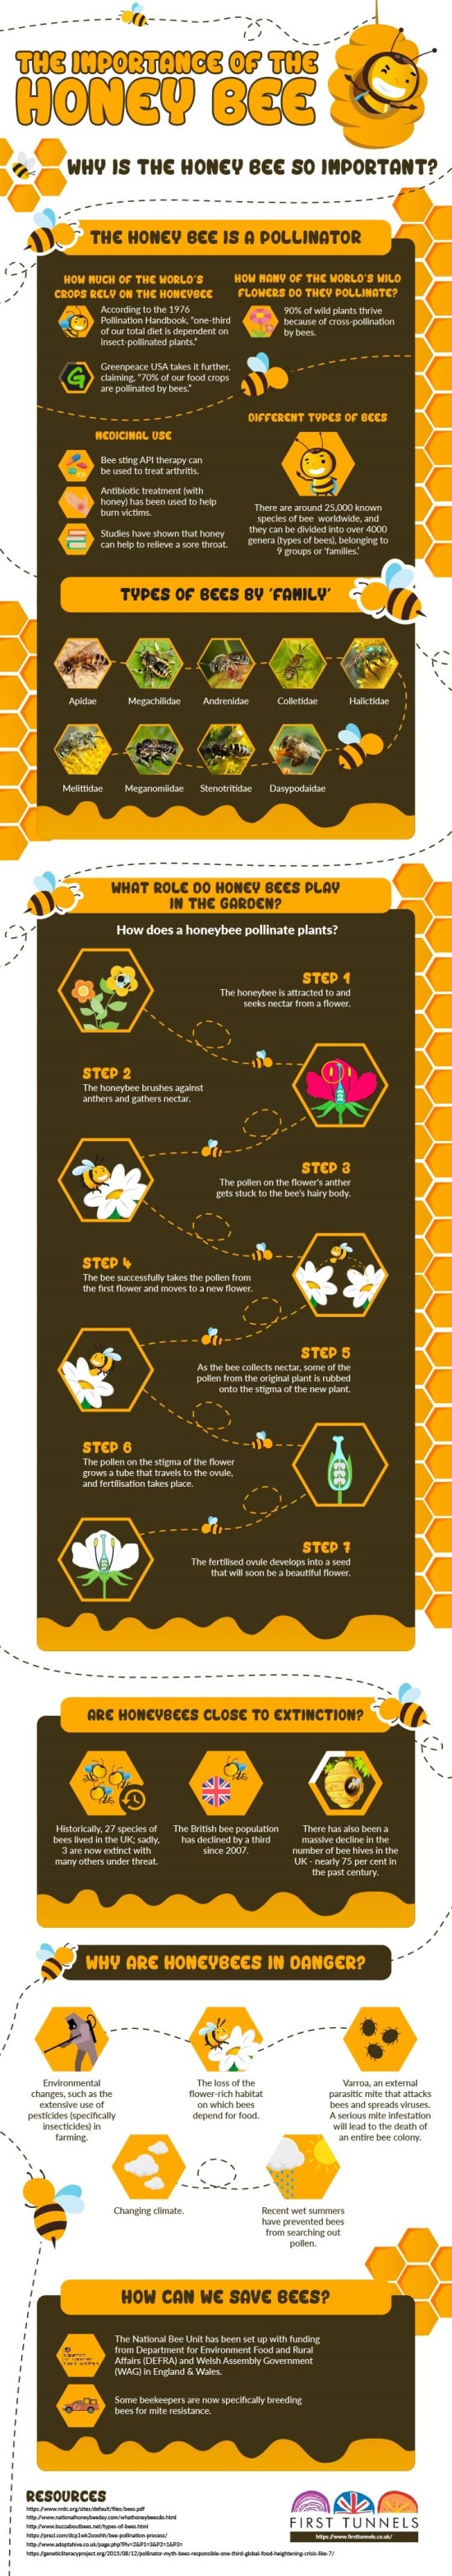 The Importance Of The Honey Bee